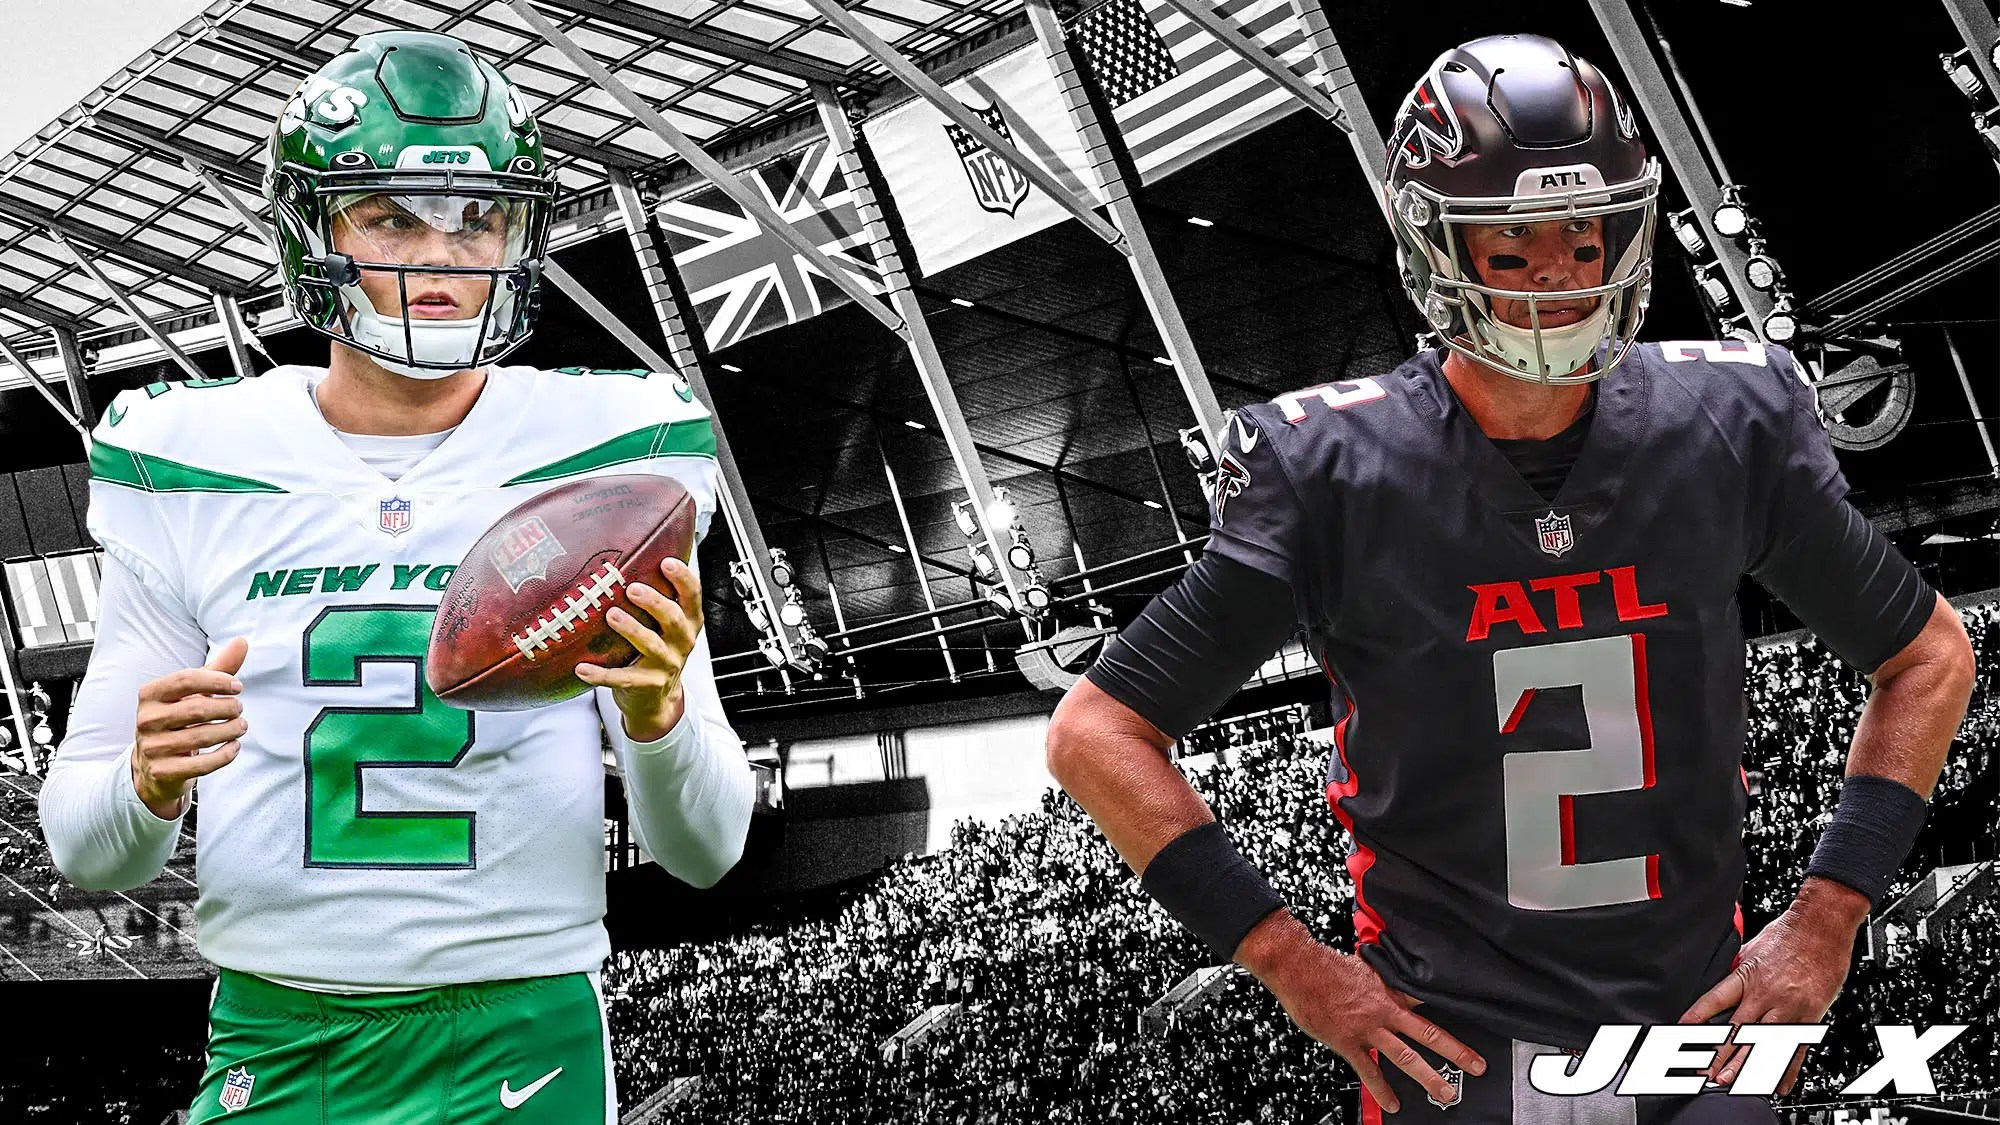 Buzzfeed staff we hope you love the products we recommend! NY Jets vs. Atlanta Falcons, Week 5 preview: On London time